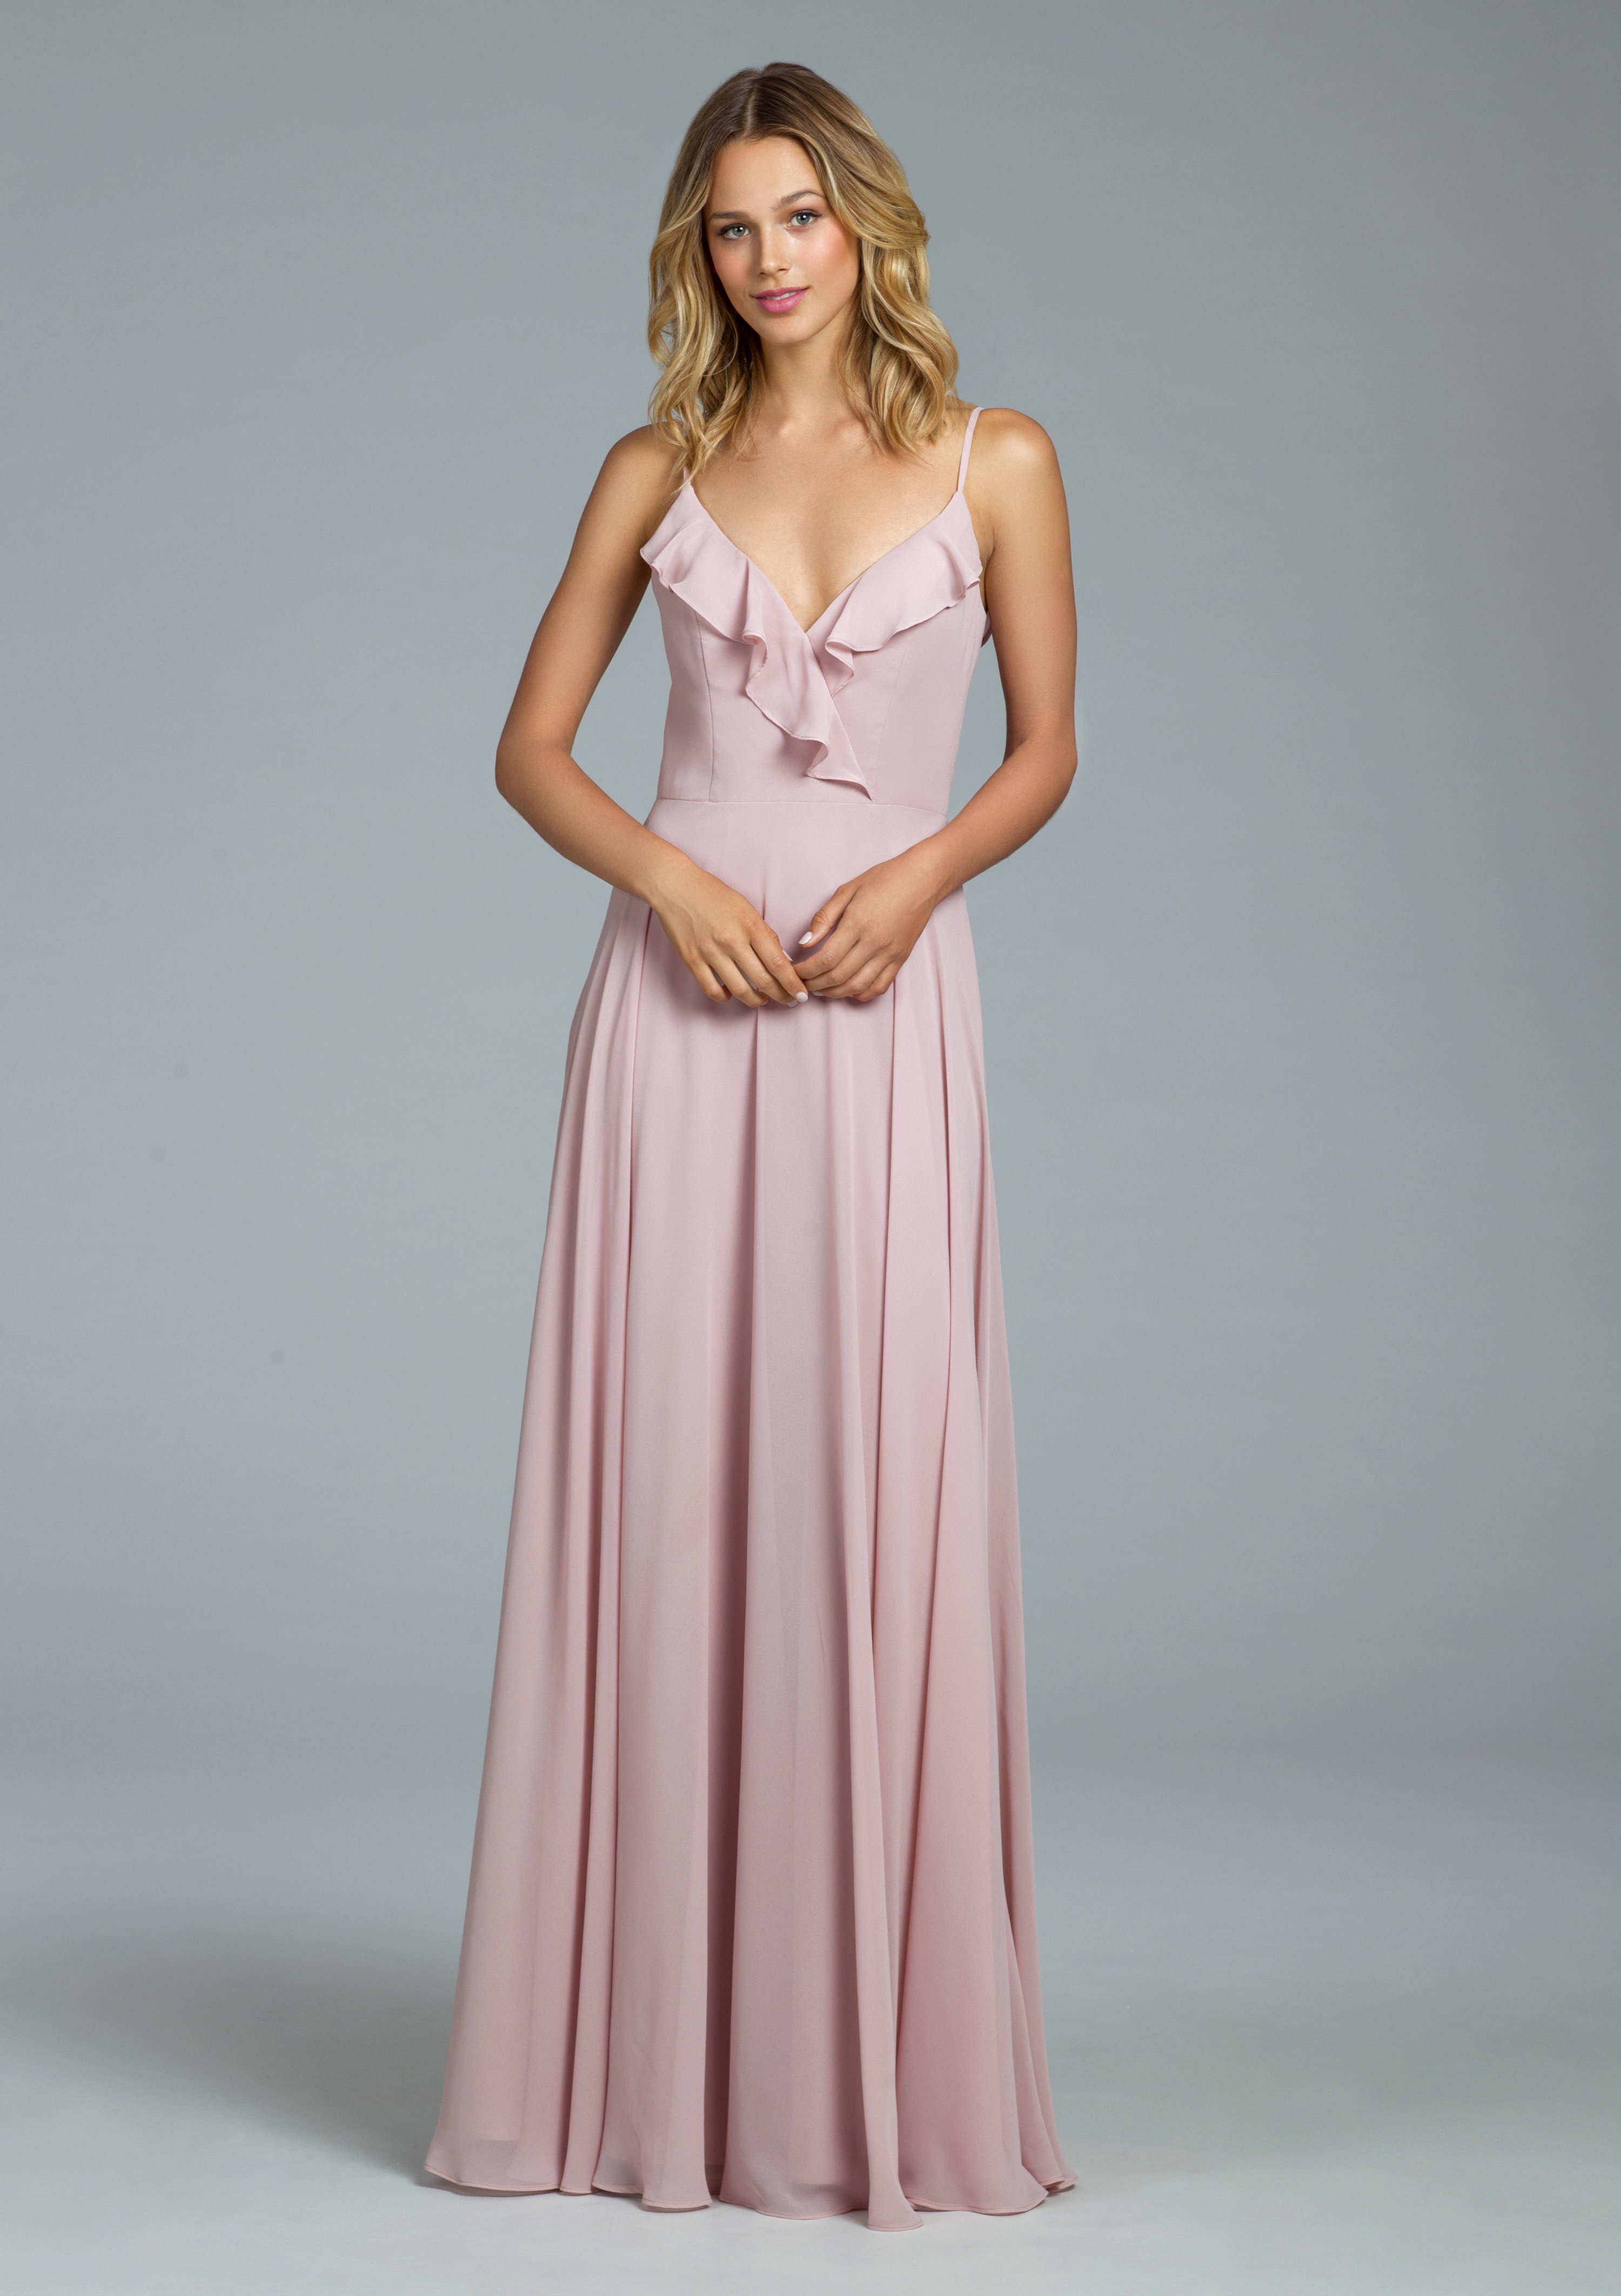 hayley-paige-occasions-bridesmaids-and-special-occasion-spring-2018-style-5803